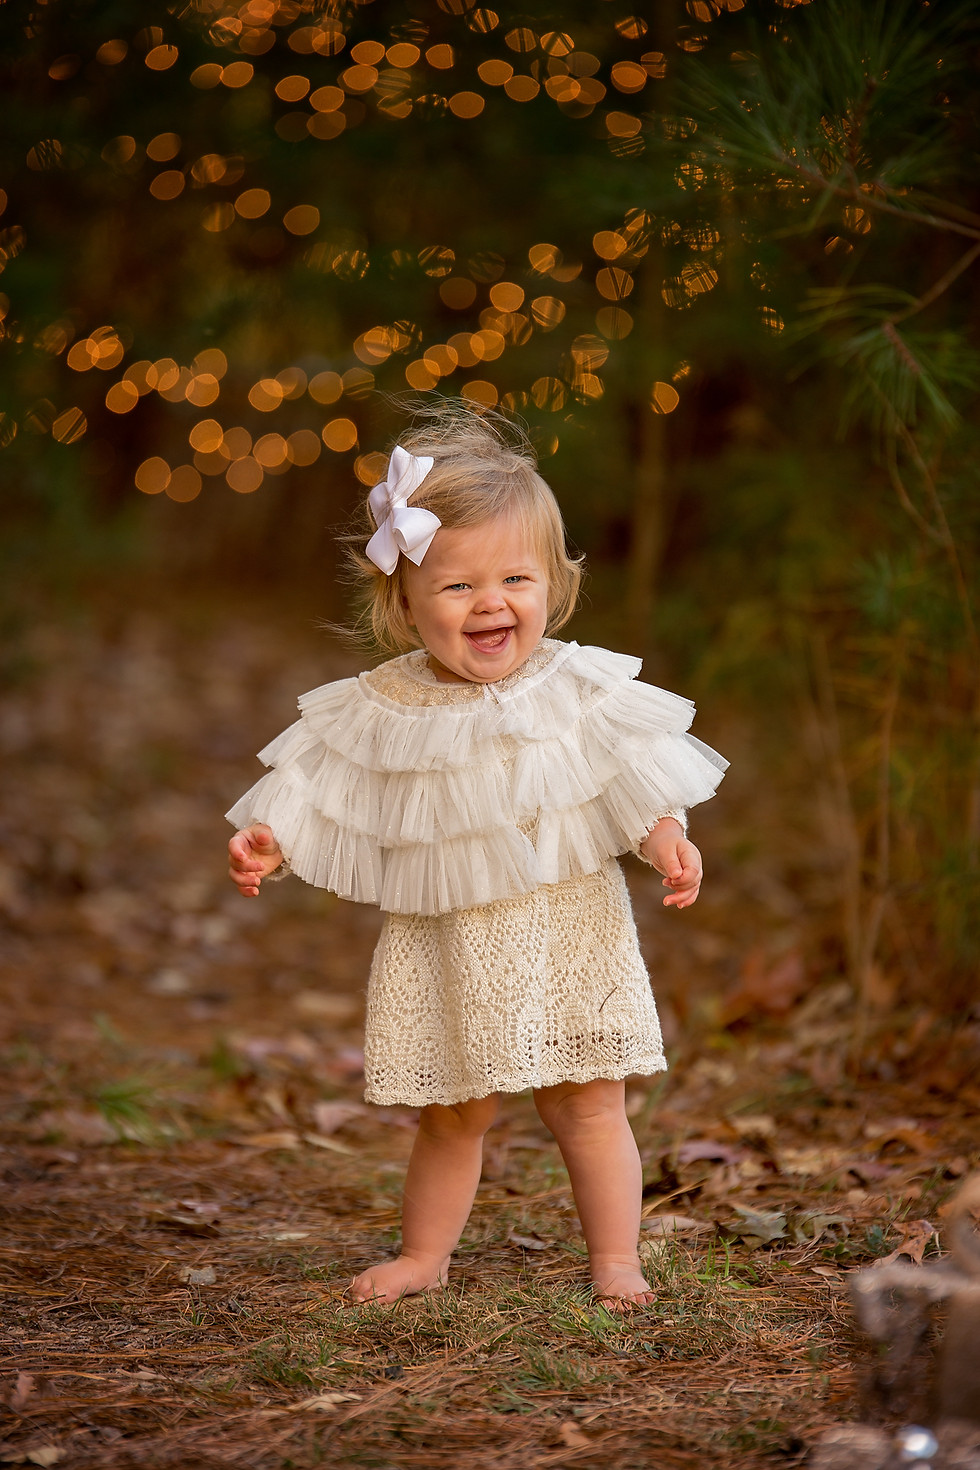 family children kids babies moms portraits photos photography portraiture families williamsburg virginia love snapped photography one year old milestones